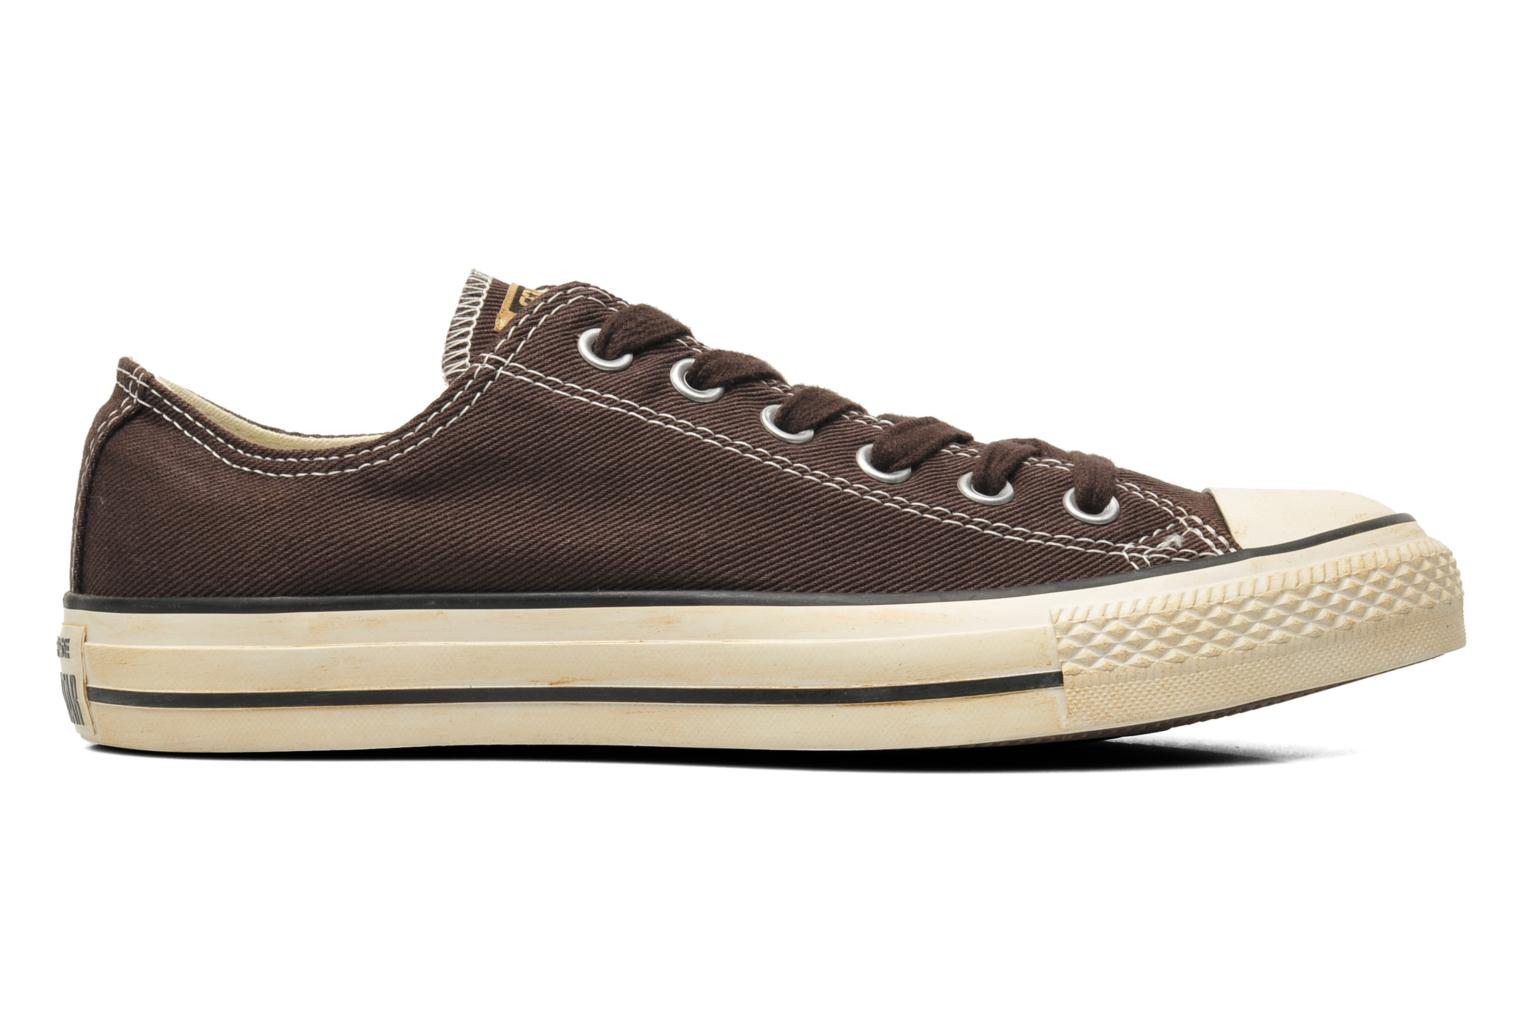 Sneakers Converse Chuck Taylor Vintage Washed Twill Ox M Bruin achterkant